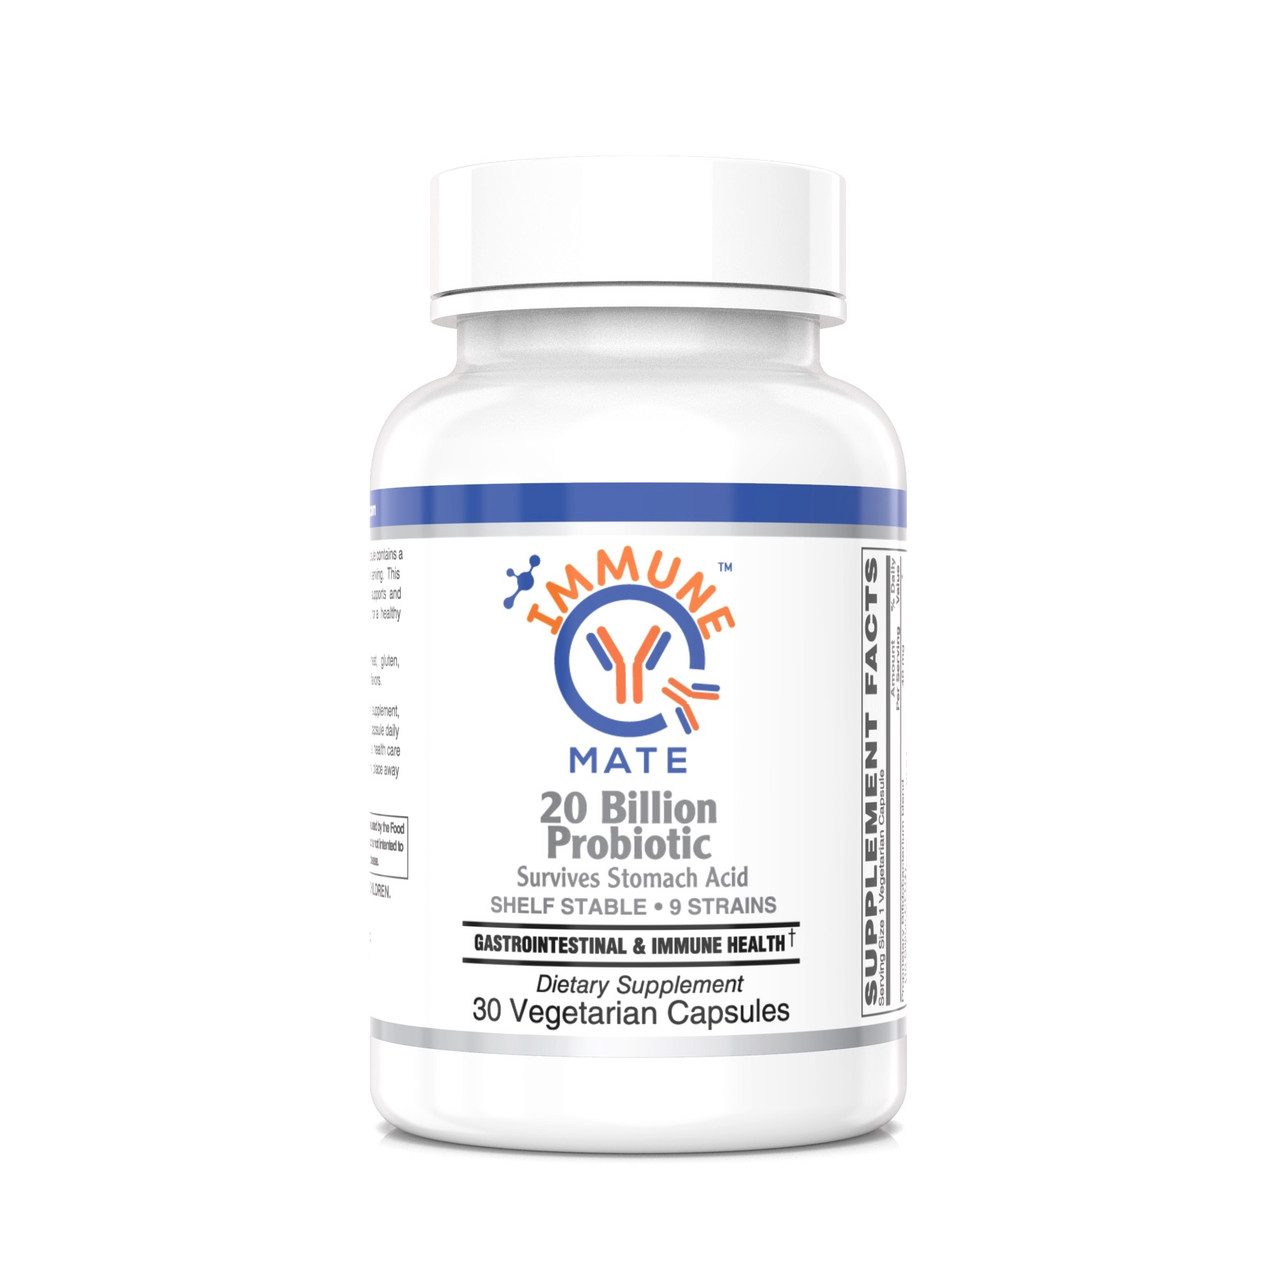 Immune Mate - Immune Support Probiotics; Formulated with Clinically tested Bifidobacterium lactis Bl-04, Maintains a healthy immune & respiratory function, & Modulates nasal immune function.* 9 Patented Strains, 20B CFU, Shelf stable, Survives Stomach Acid.